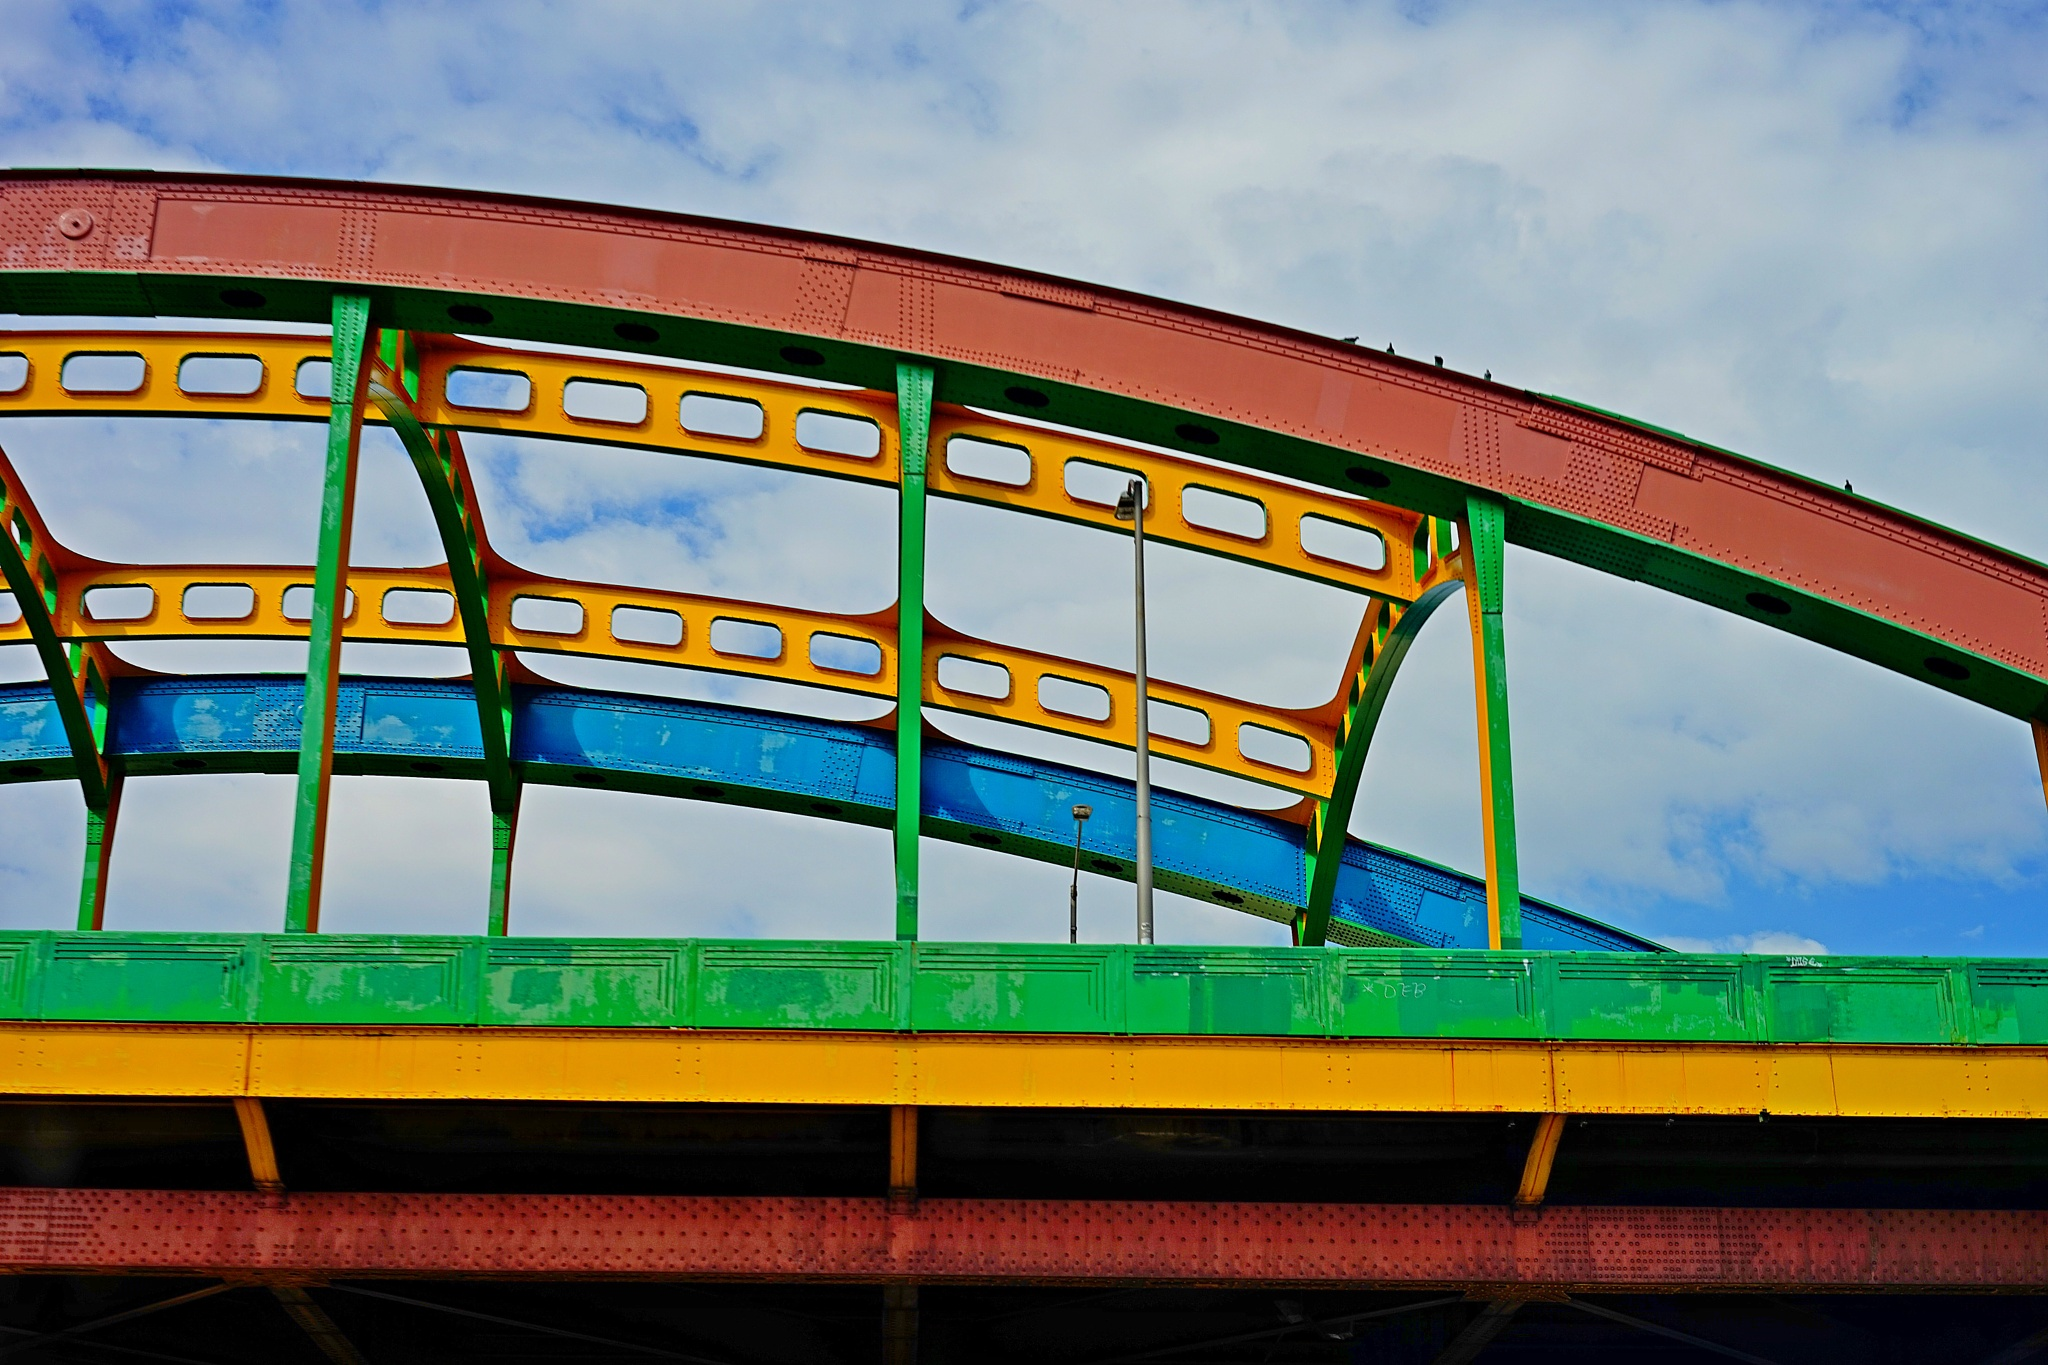 COLORFUL INTERSTATE HIGHWAY BRIDGE CROSSING by ColoursPhotography